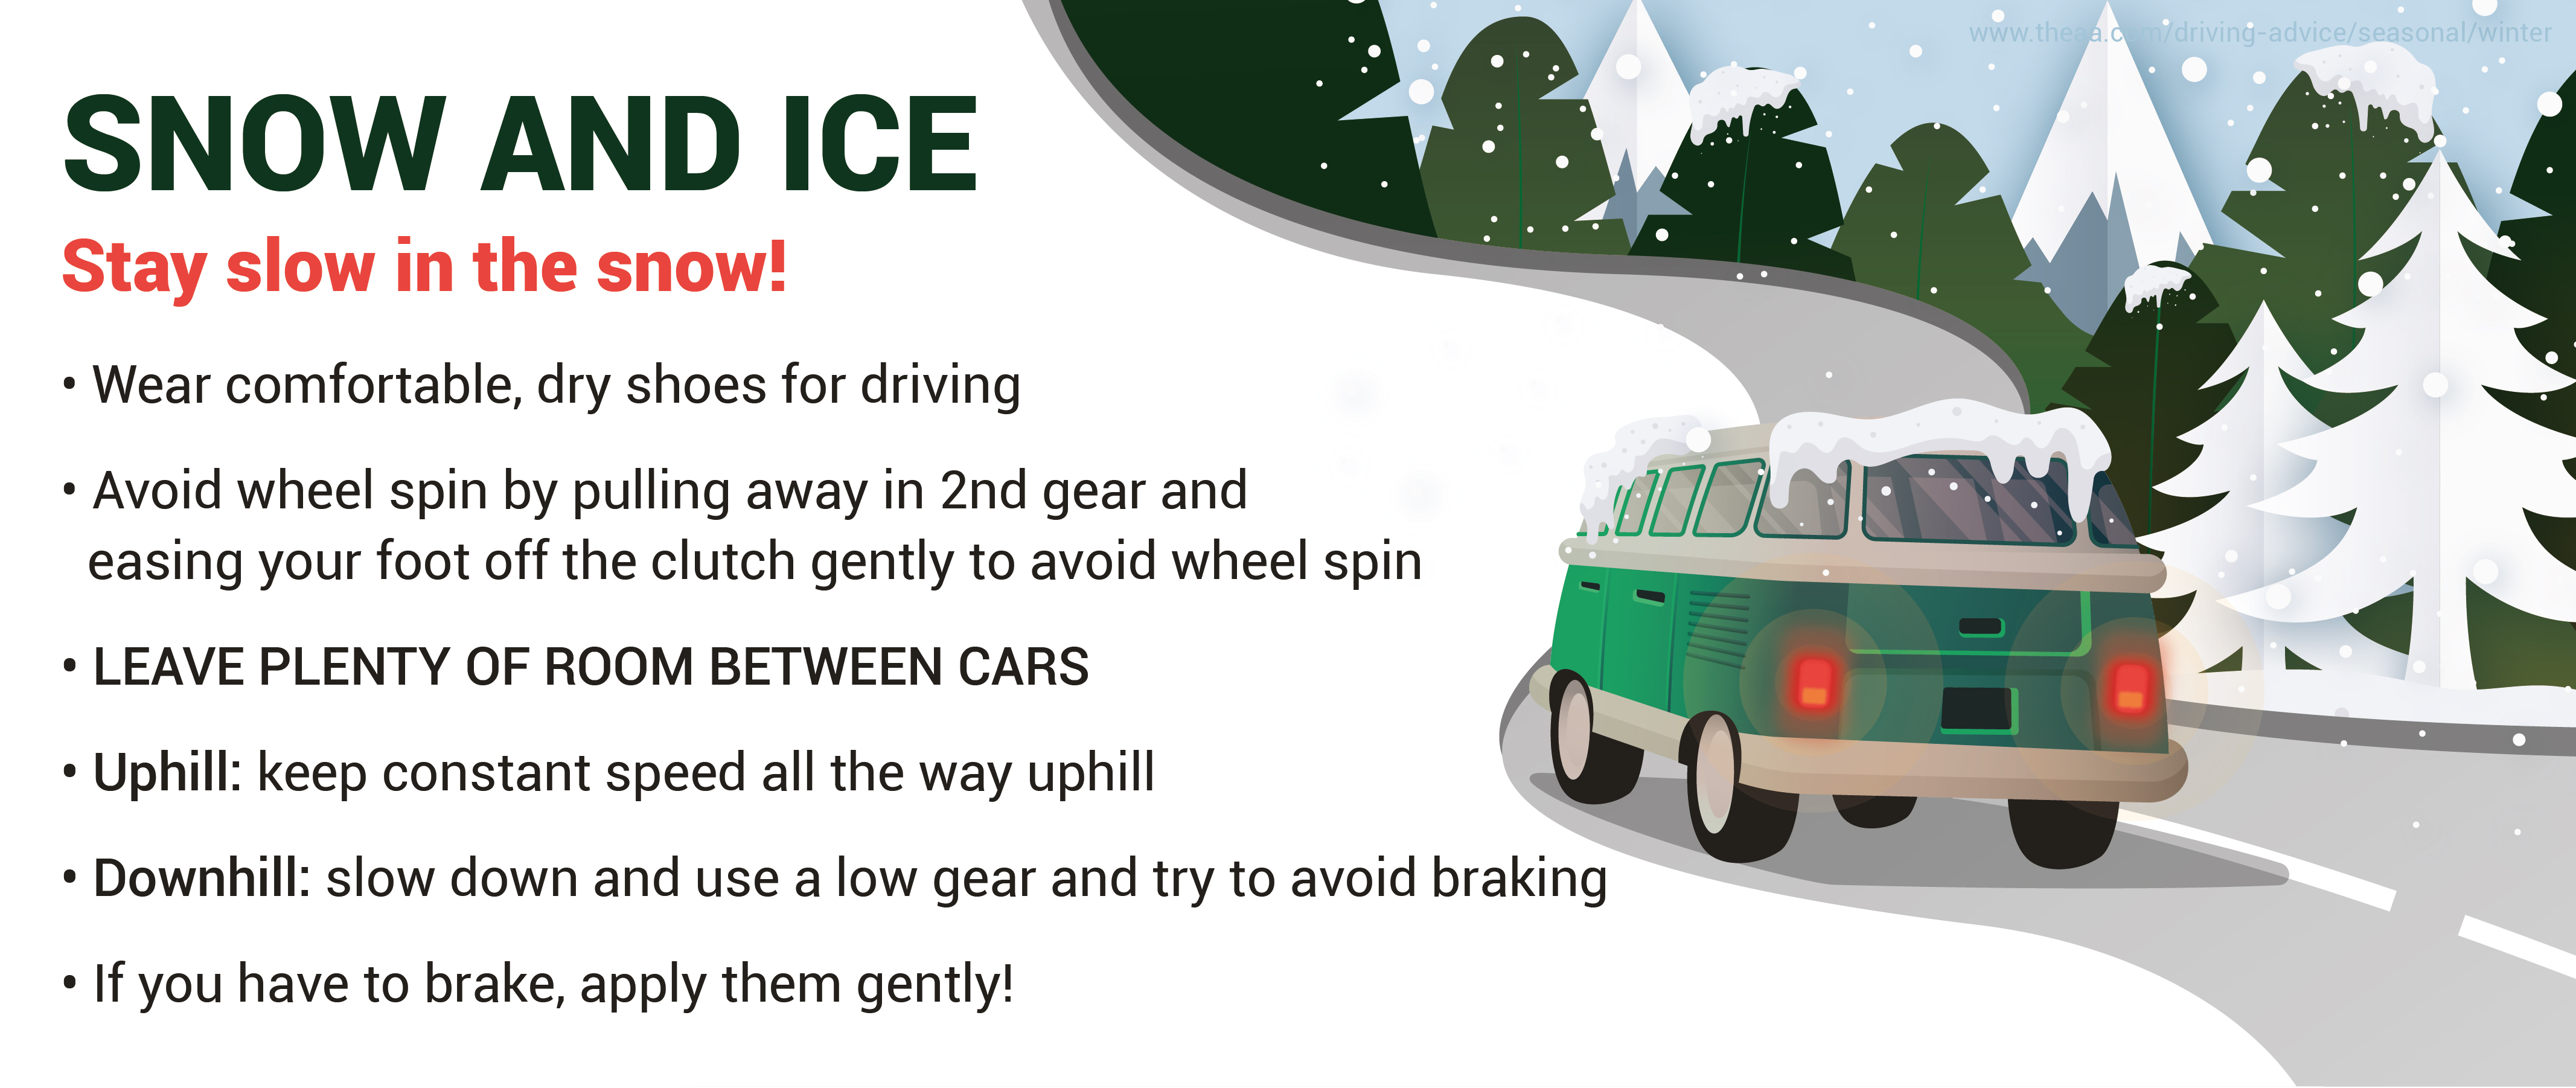 Snow & Ice: Stay slow in the snow!